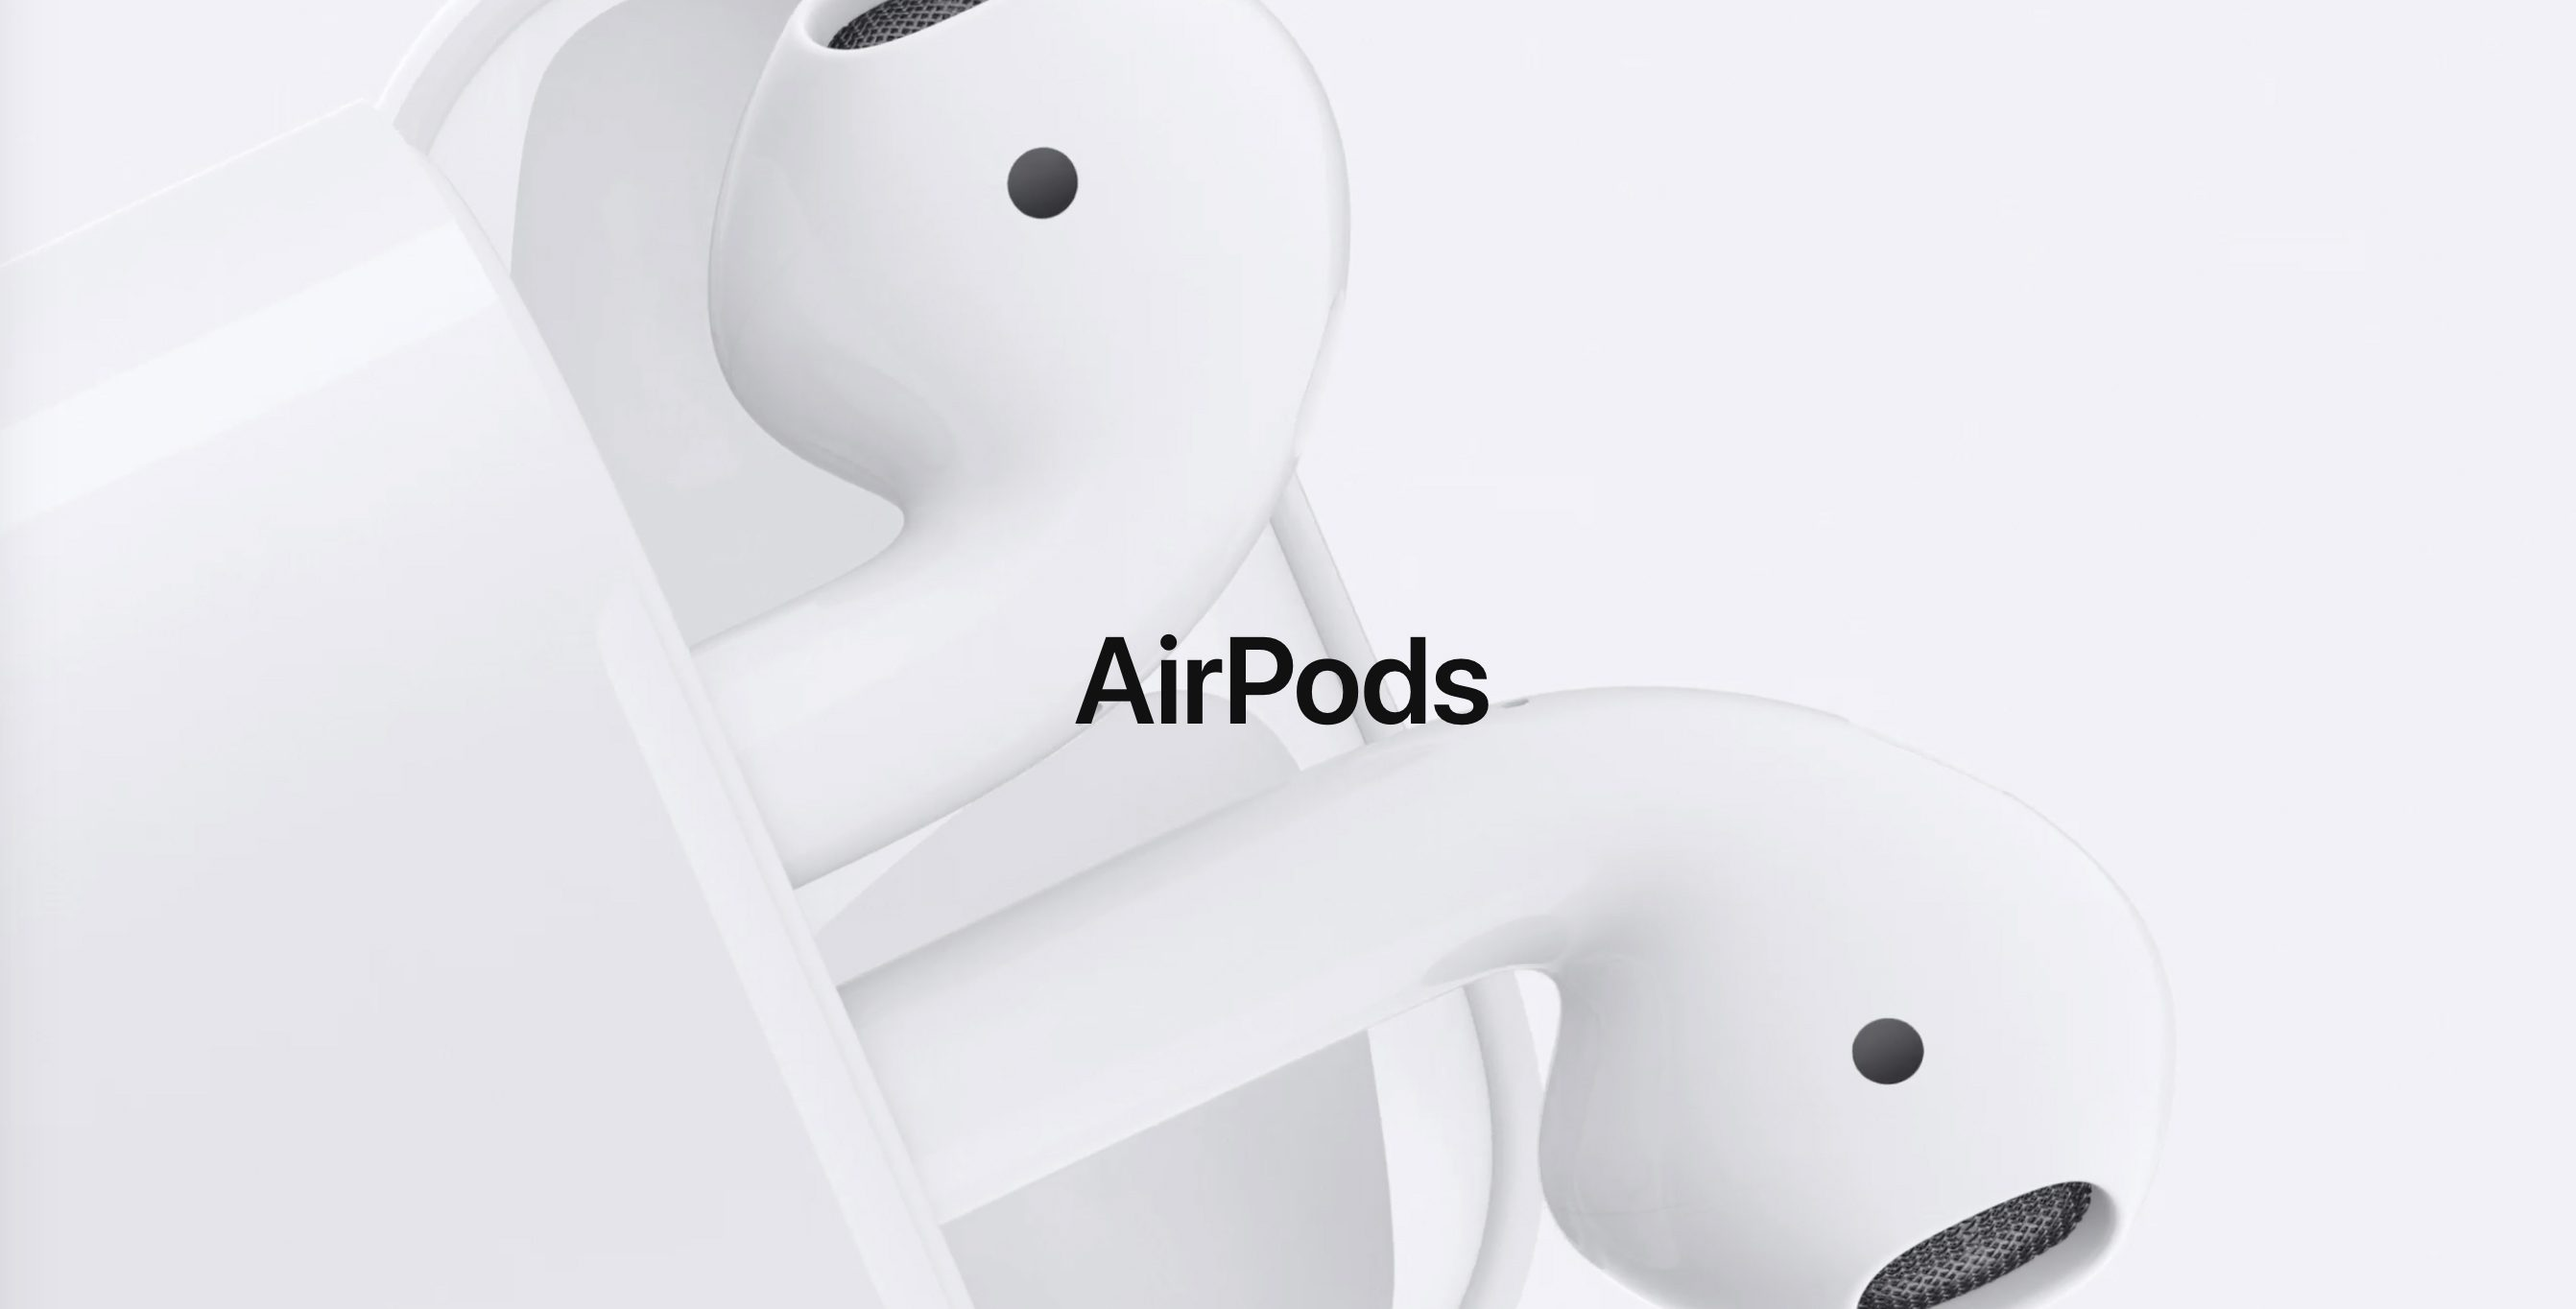 Digitimes: AirPods 2 launching in first half of this year, redesigned to support 'health monitoring' features